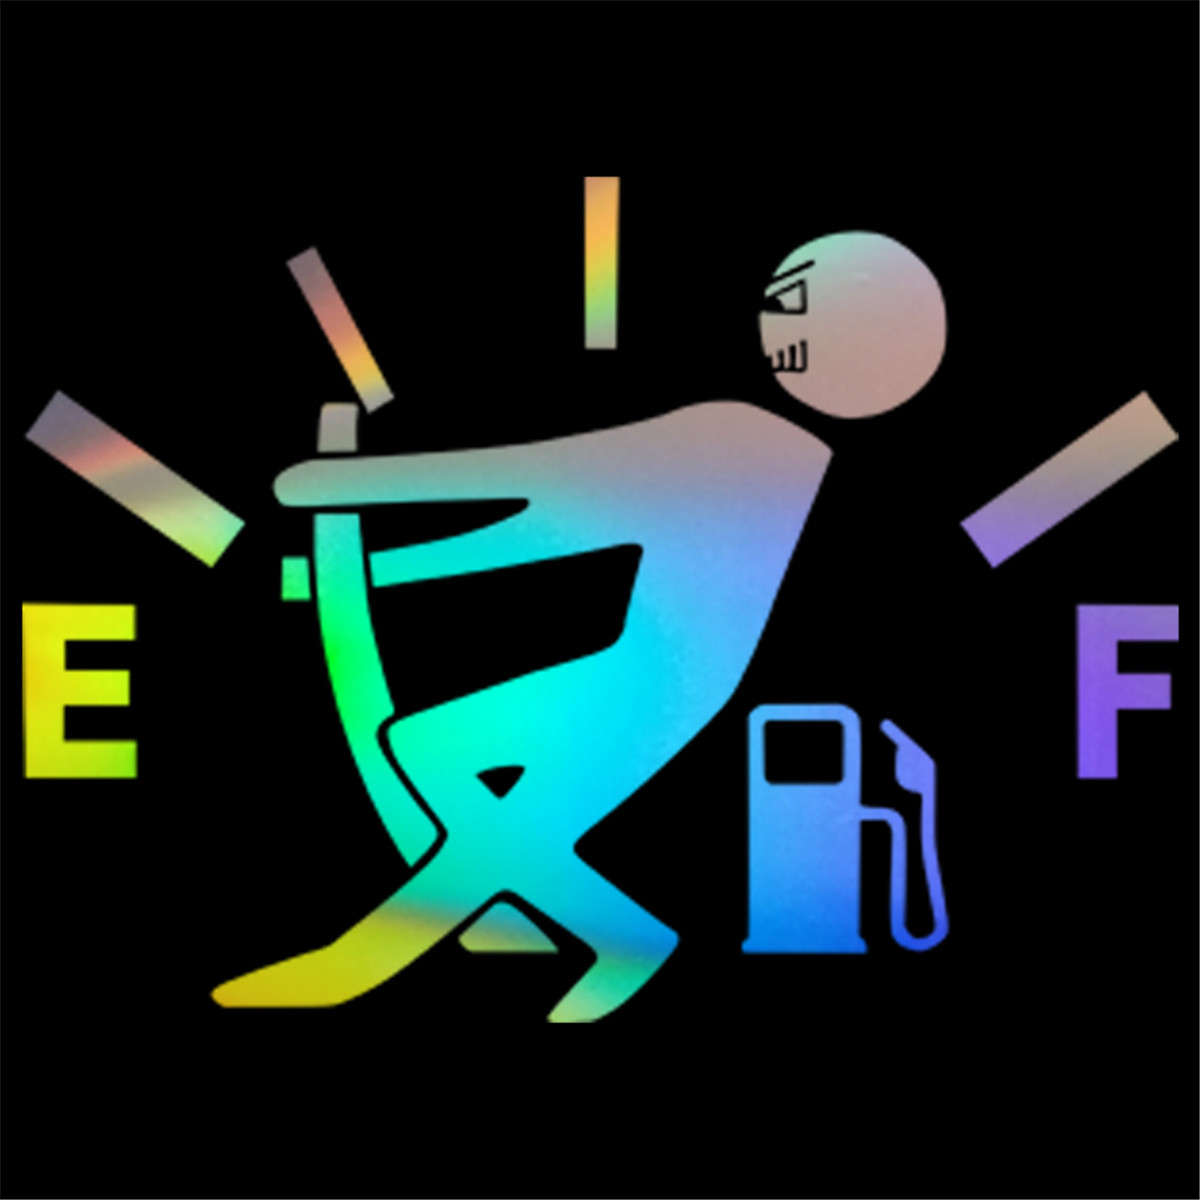 Funny Car Vinyl Sticker High Gas Consumption Decal Fuel Gage Empty Removable